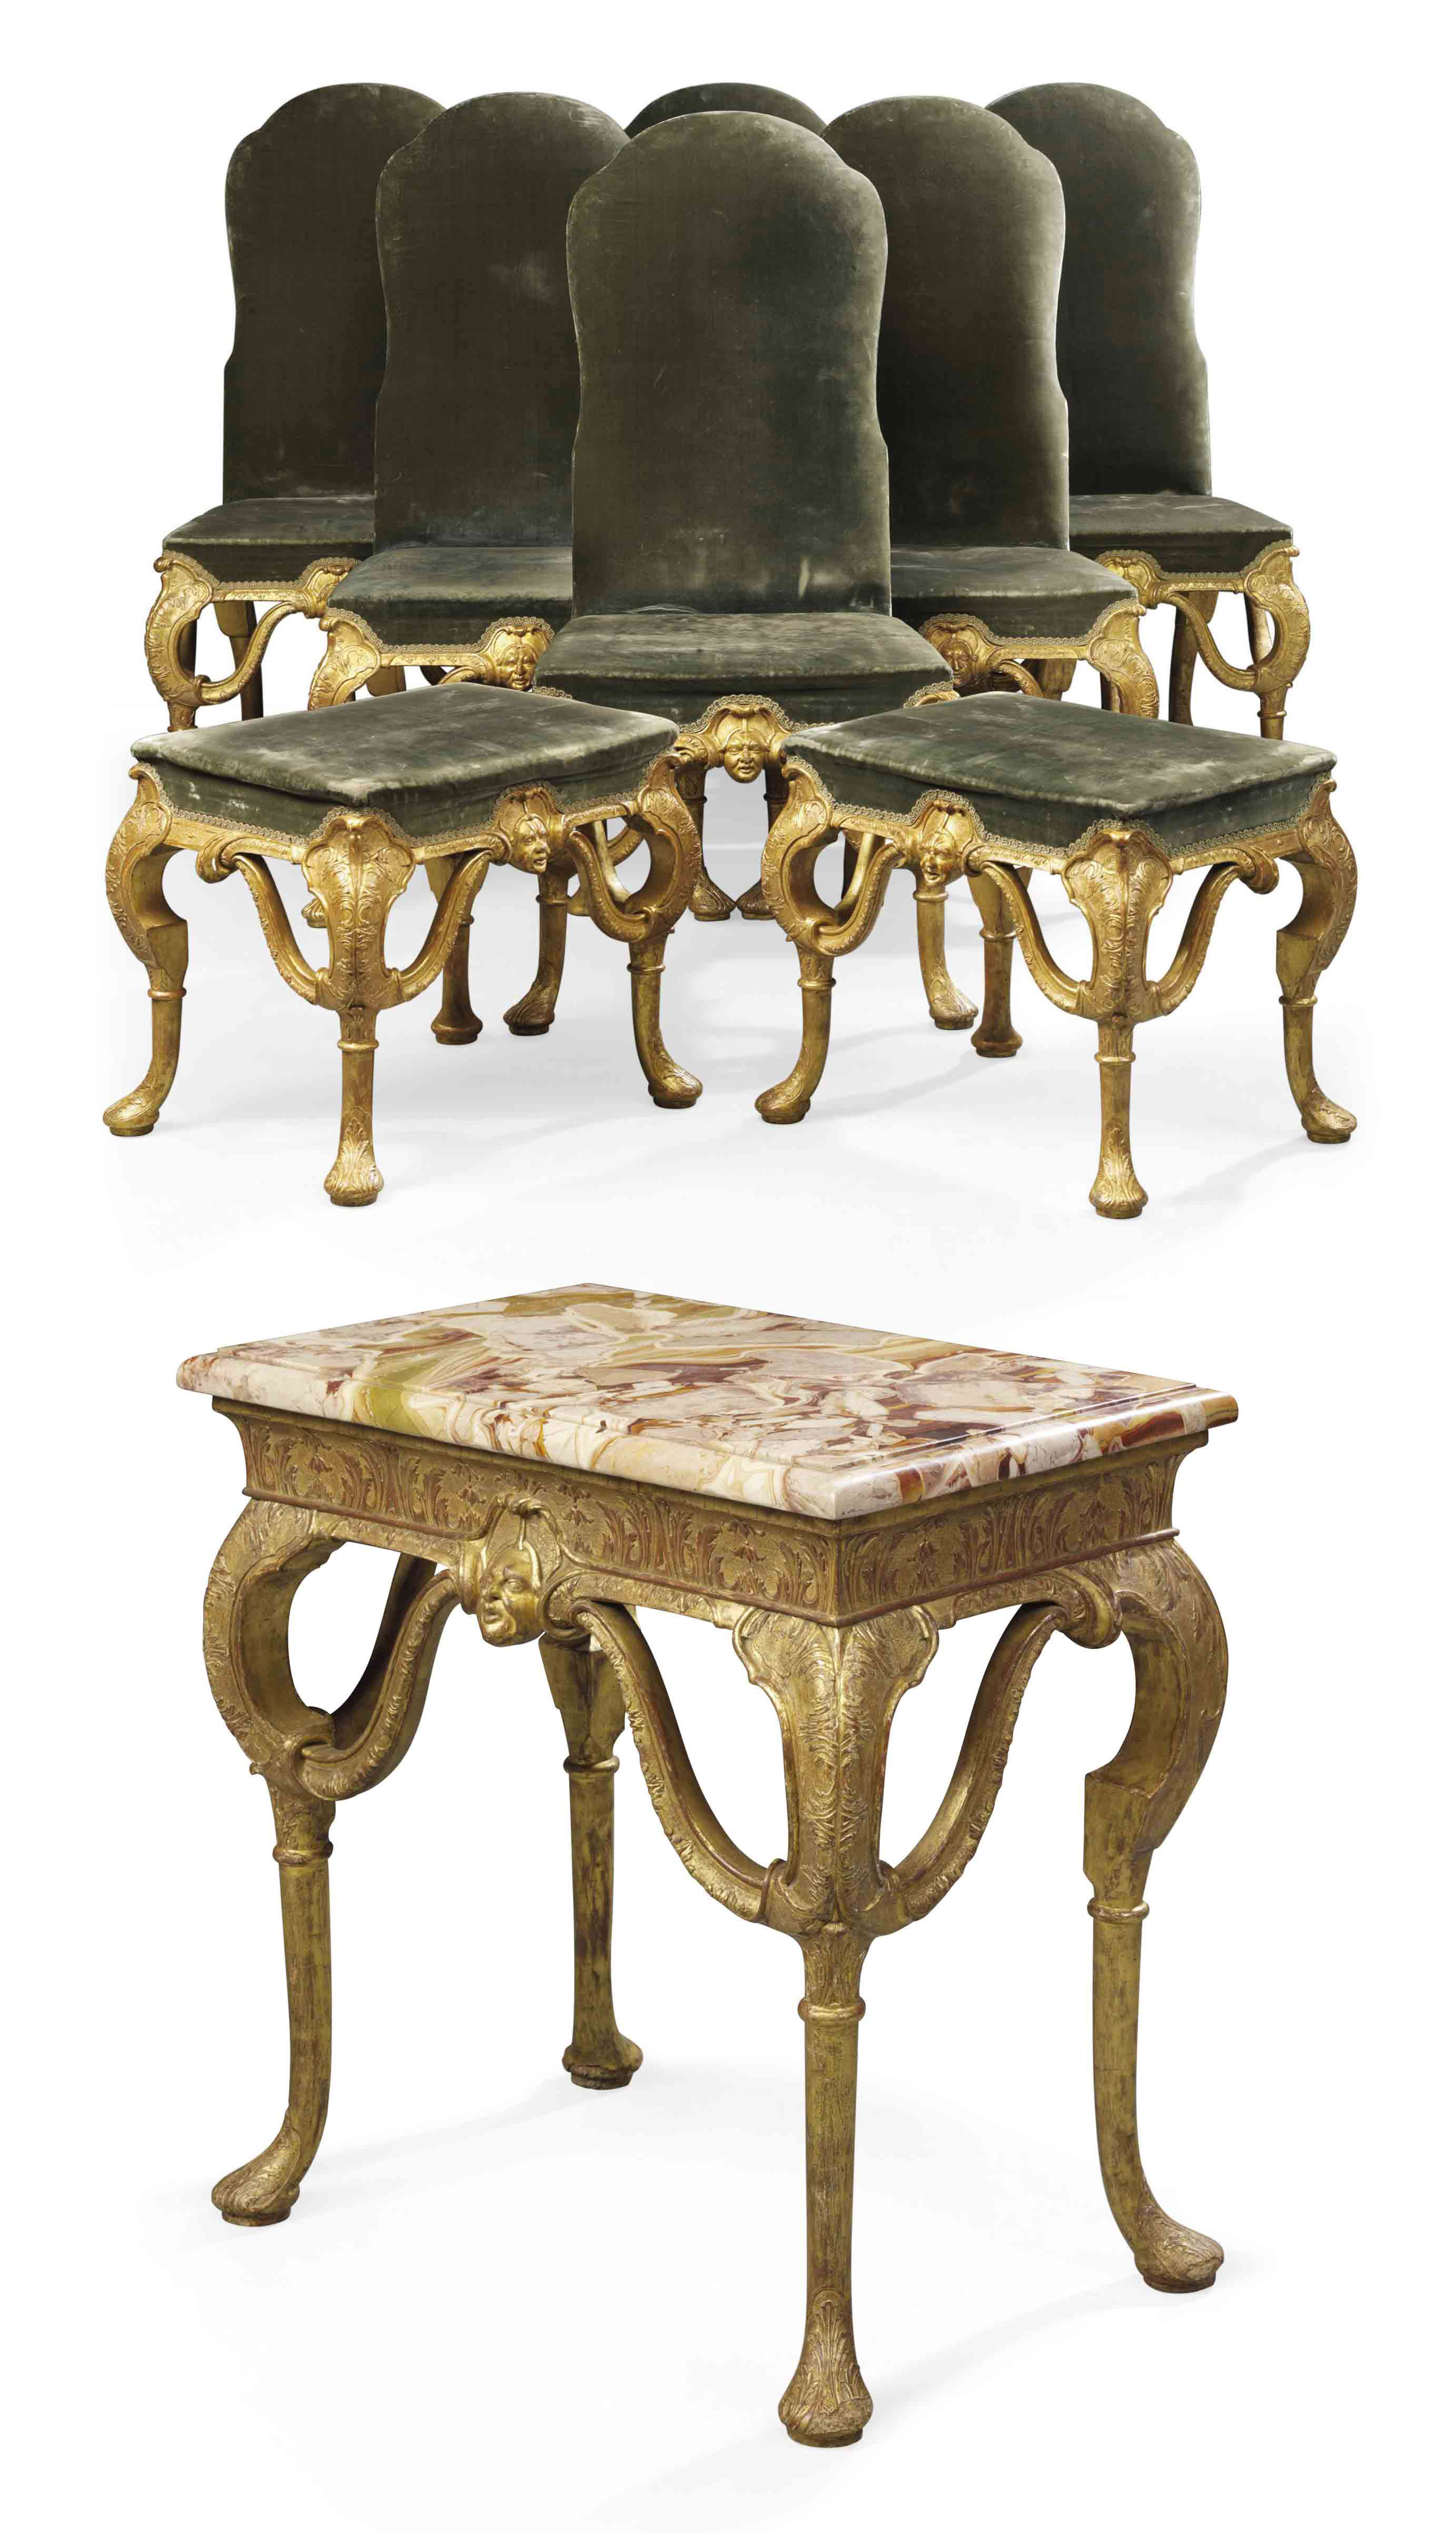 A SUITE OF QUEEN ANNE GILT-GESSO SEAT-FURNITURE AND SIDE TABLE